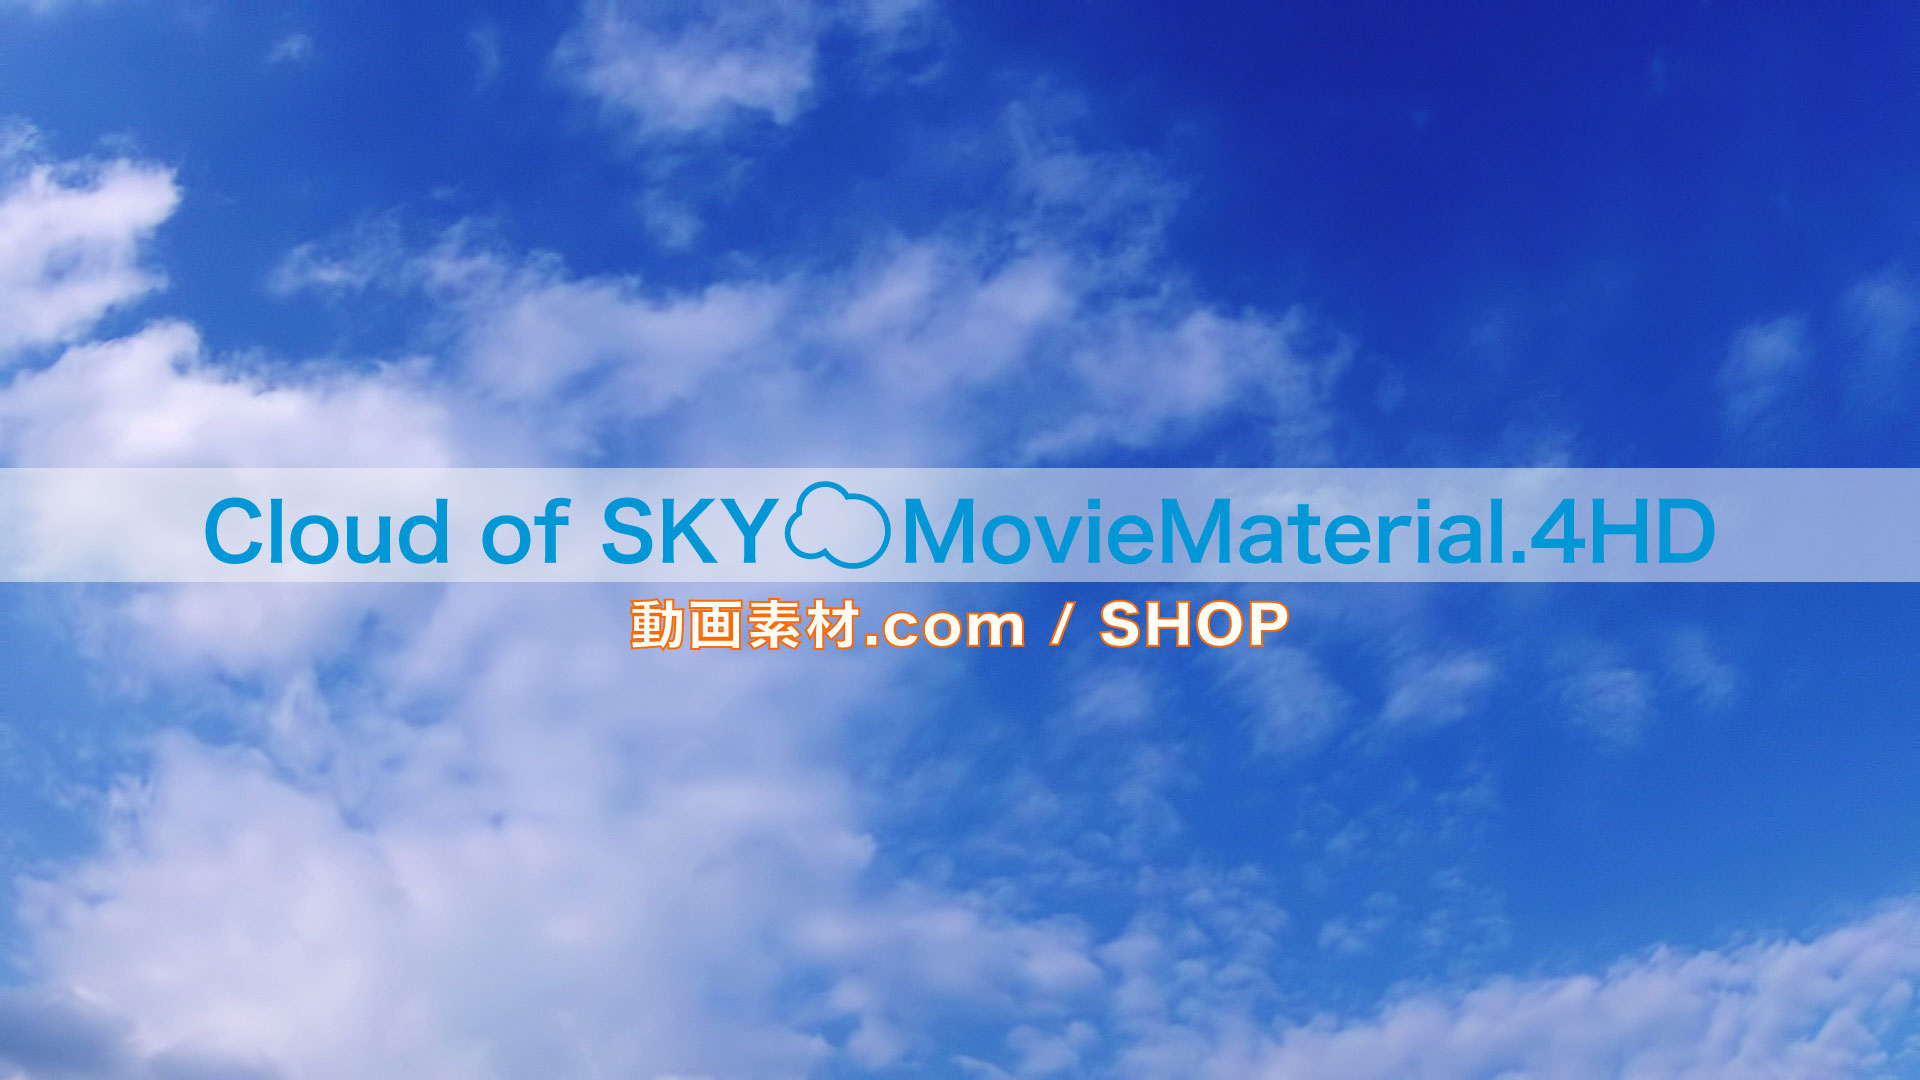 【Cloud of SKY MovieMaterial.4HD】ロイヤリティフリー フルハイビジョン空と雲の動画素材集 Image.3